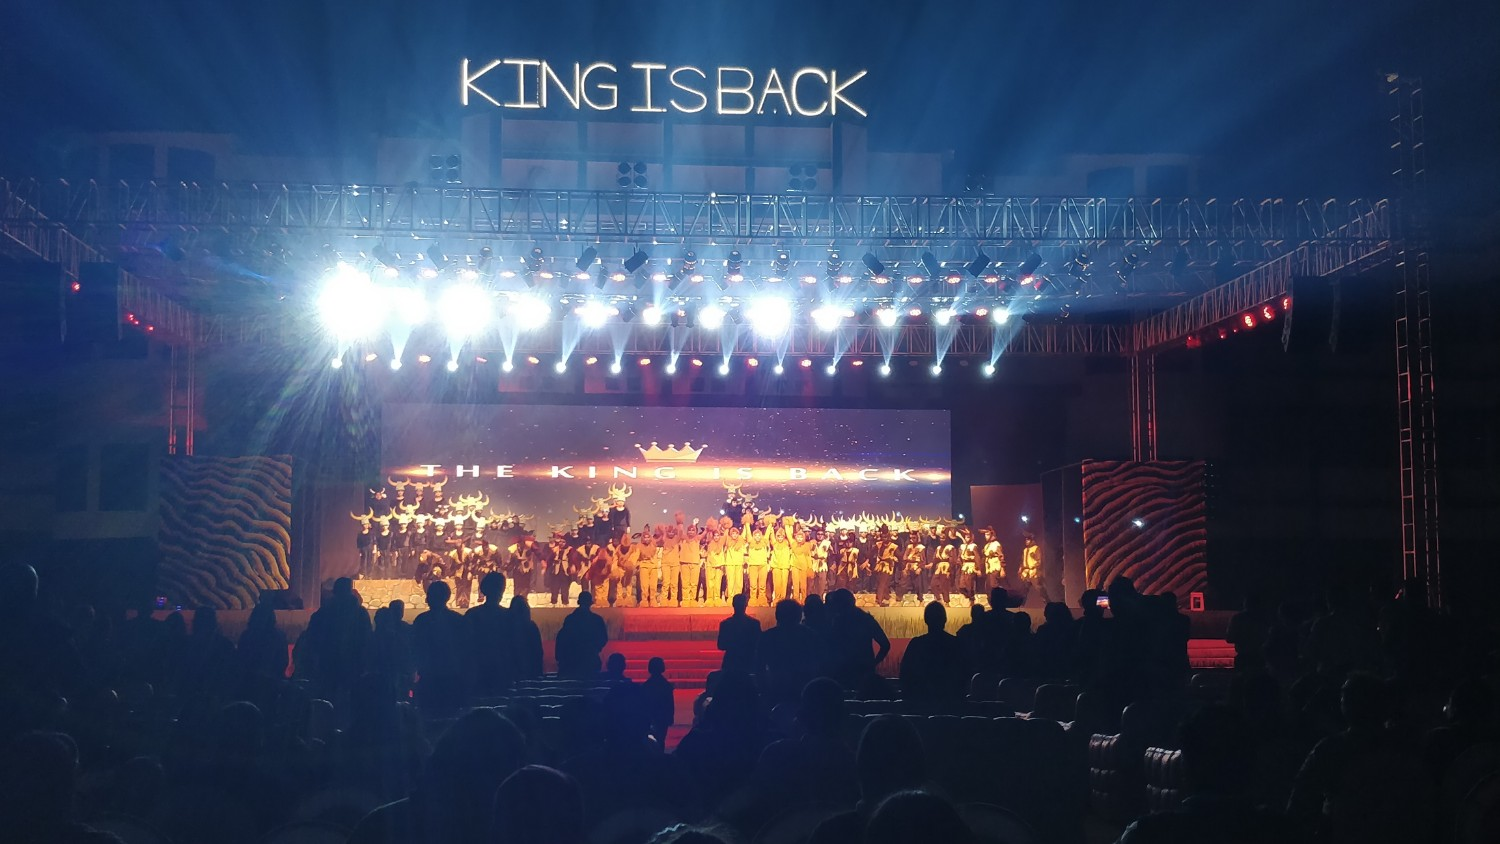 King is Back_2 - Edited